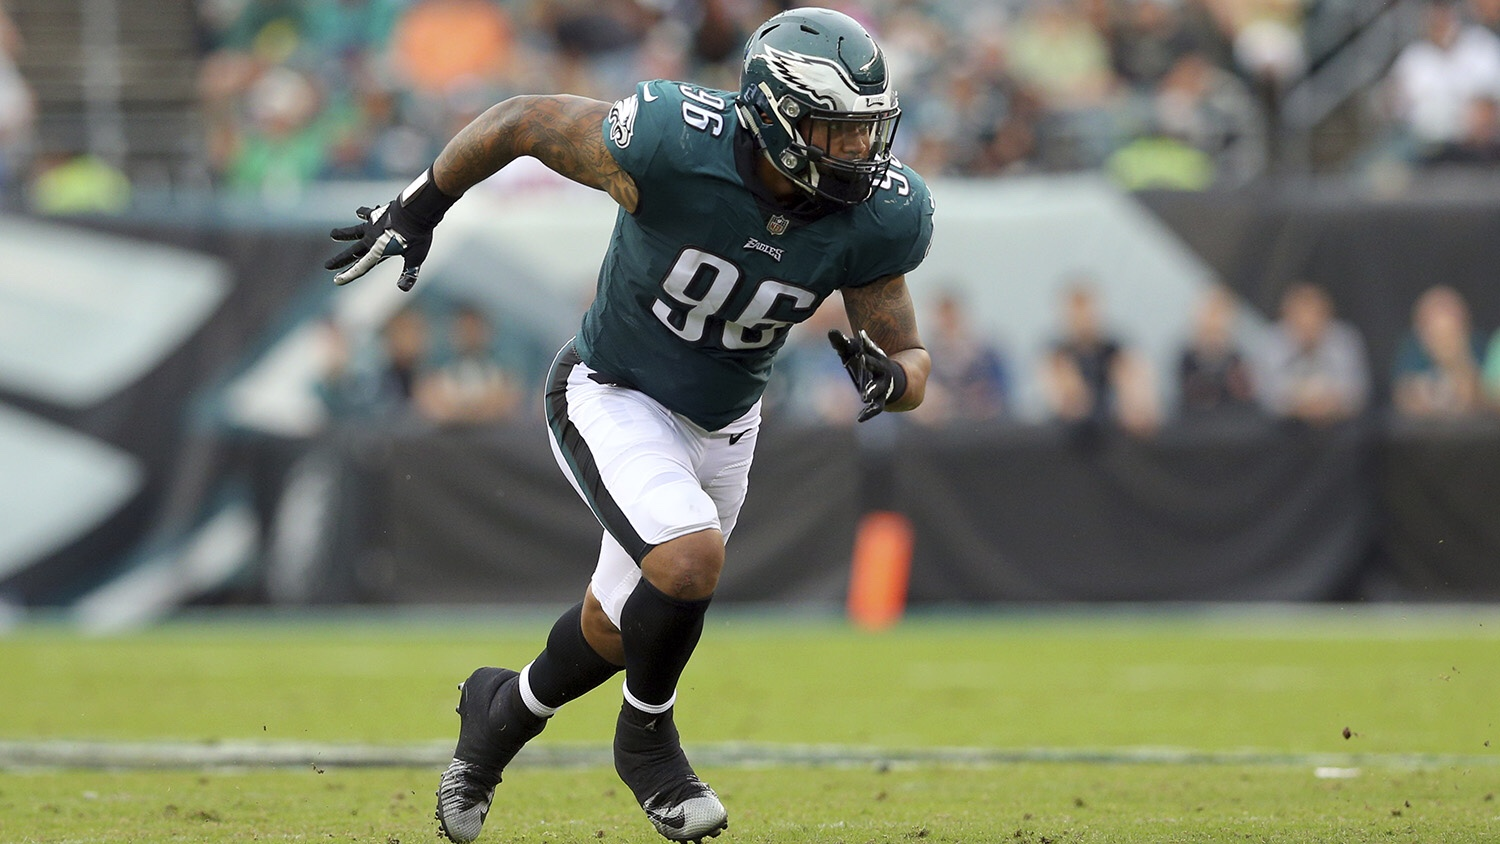 Two Eagles Defensive Linemen Are Already Out Indefinitely